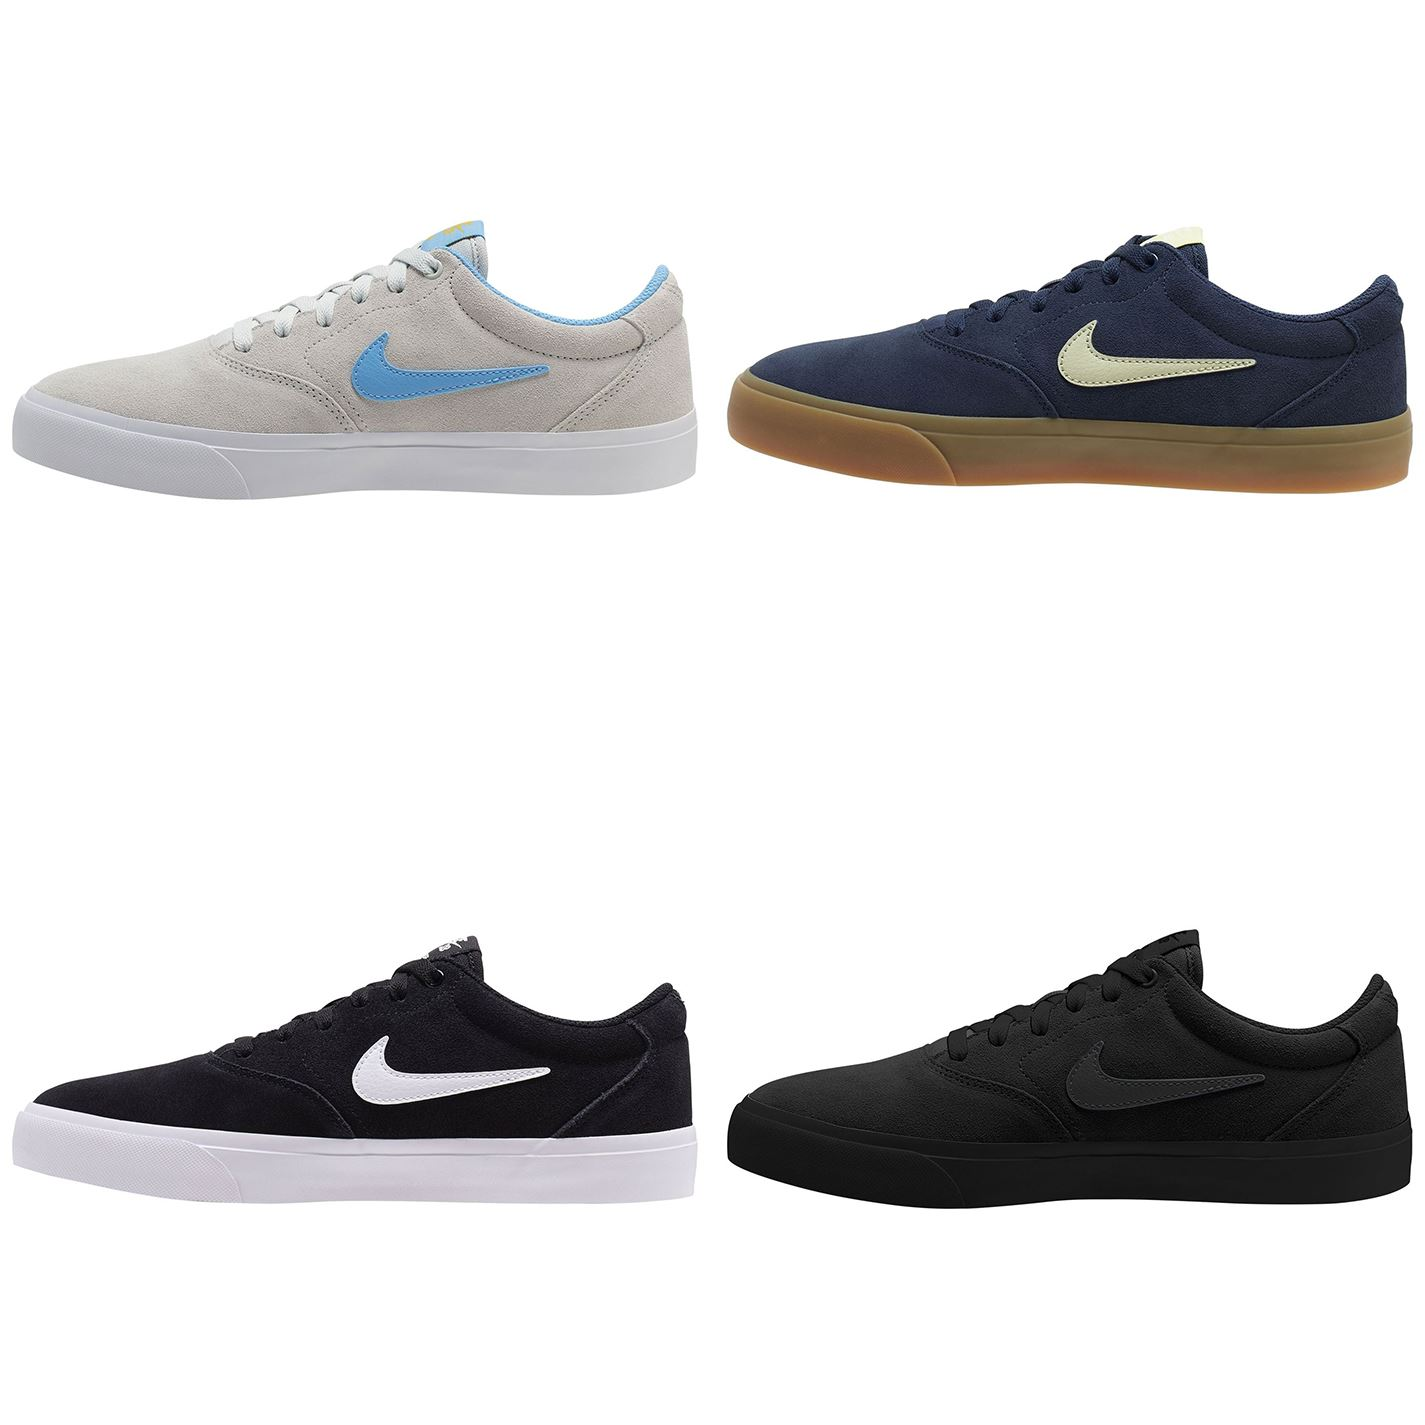 Nike SB Charge Suede Skate Trainers